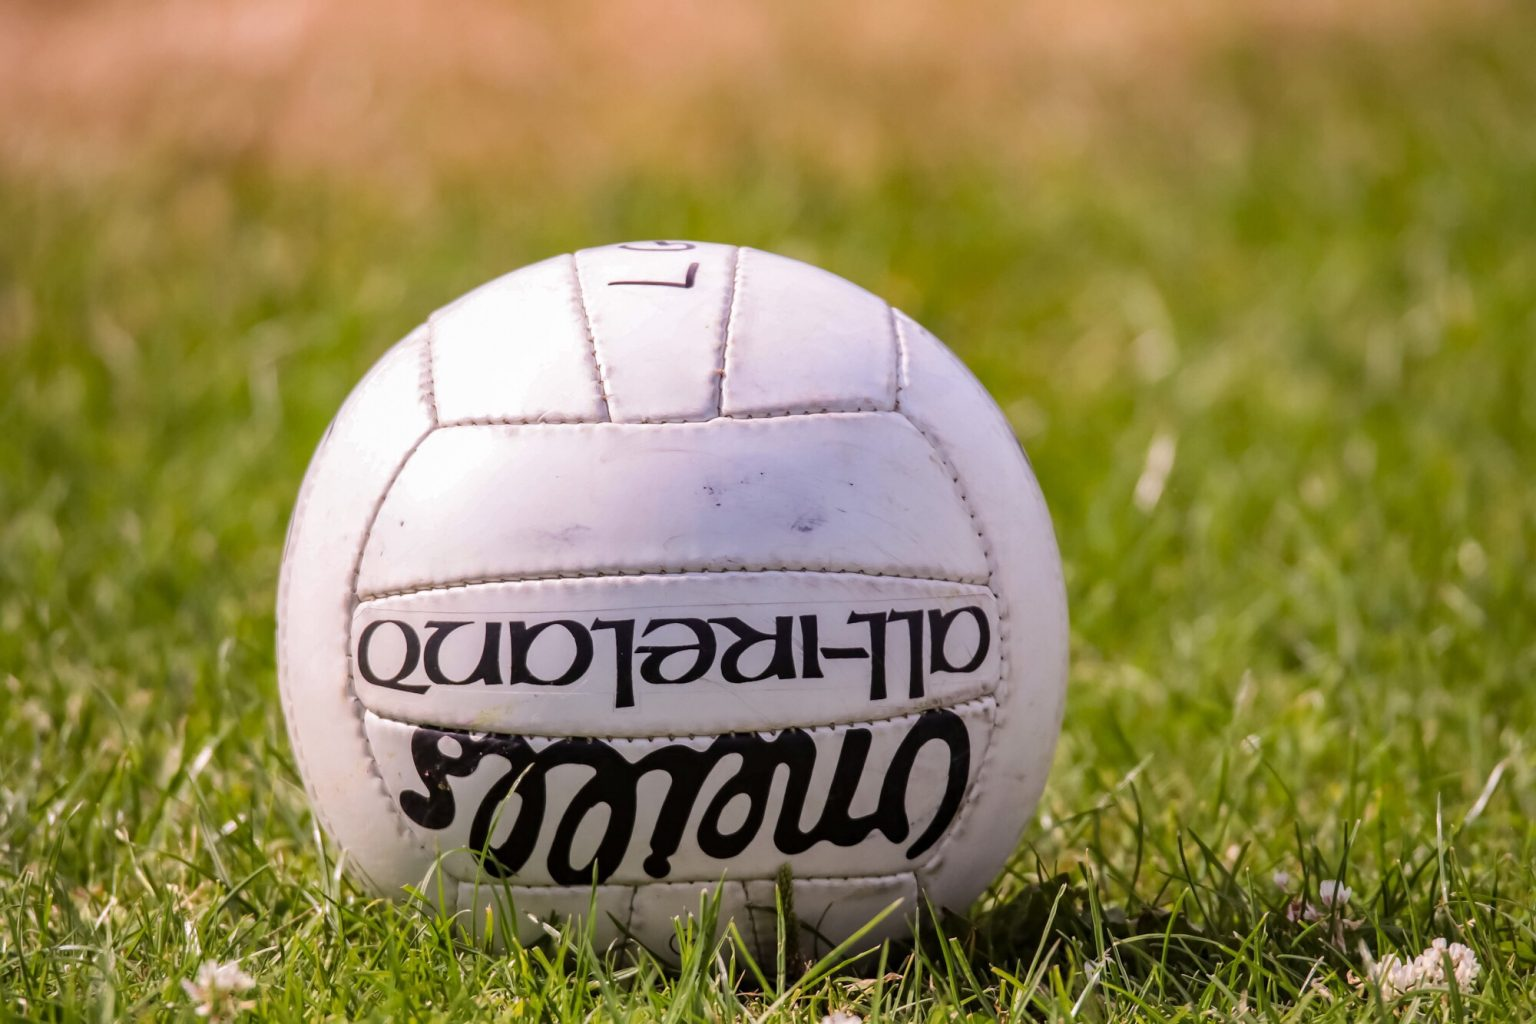 A white Gaelic football on a grass pitch as the GAA announce that the controversial 3 hand pass limit rule has been scrapped